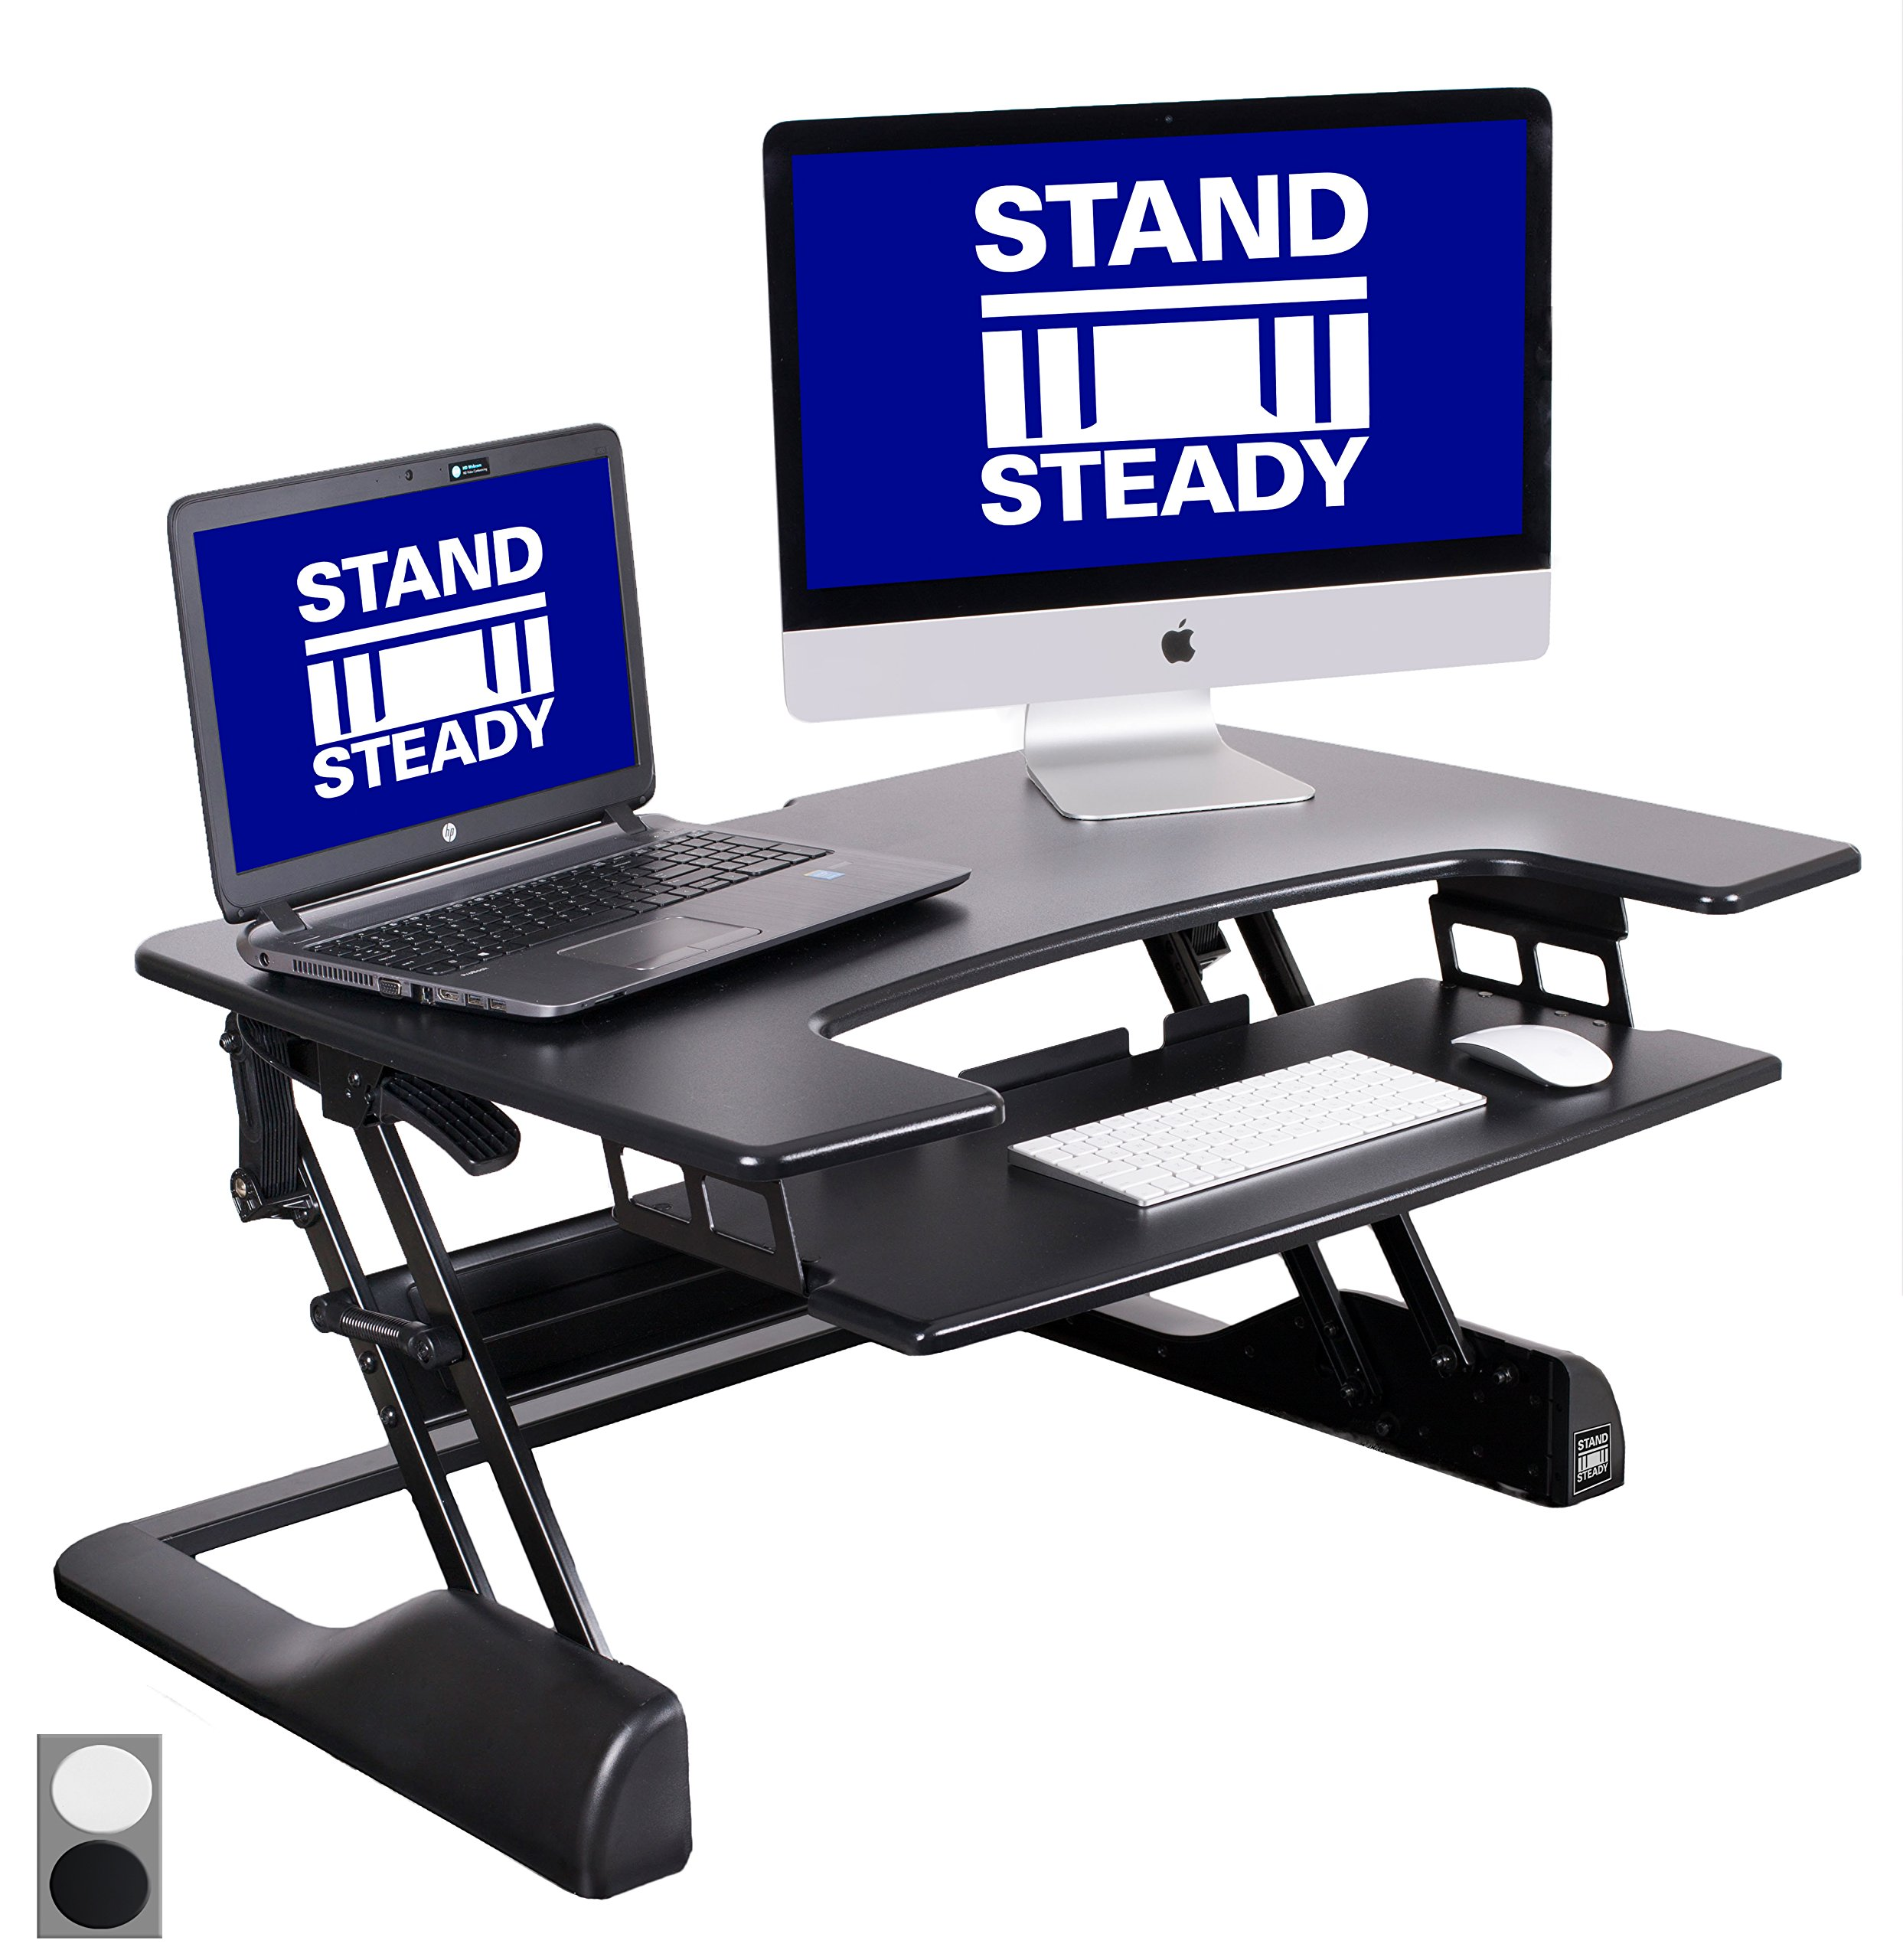 """FlexPro Precision 35"""" Standing Desk from Award-Winning Stand Steady + FREE Standing Desk Wellness Guide! 